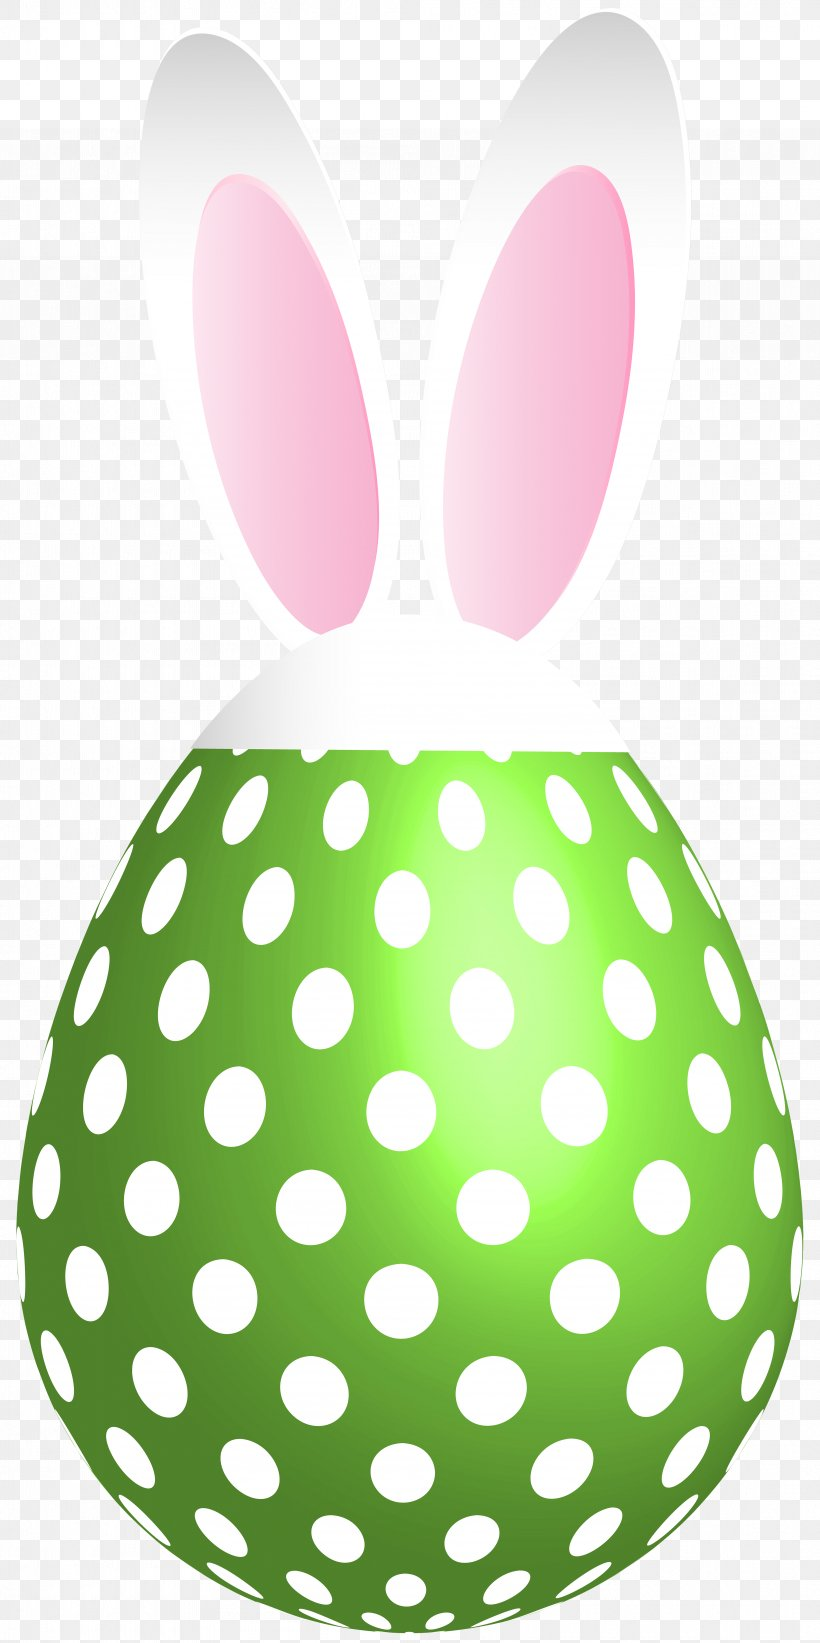 Easter Bunny Drawing Art Clip Art, PNG, 3992x8000px, Easter Bunny, Art, Christmas, Christmas Card, Drawing Download Free